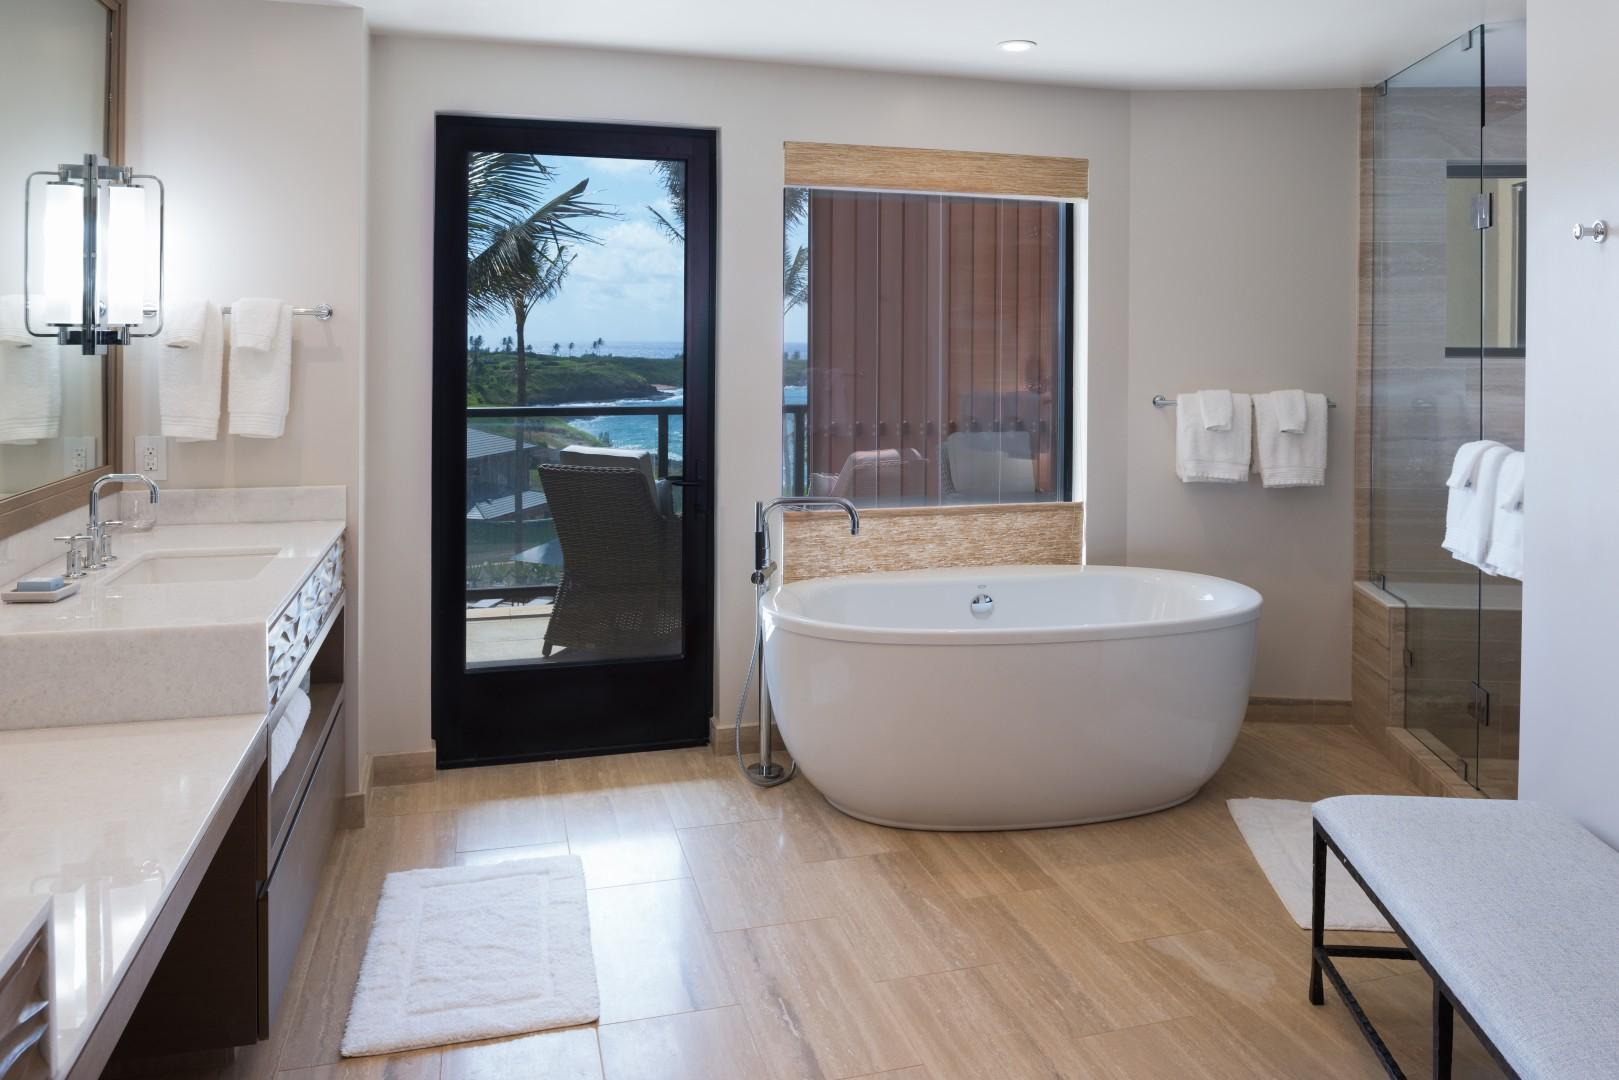 Each master bath boasts a soaking tub, a separate shower, and dual vanities.